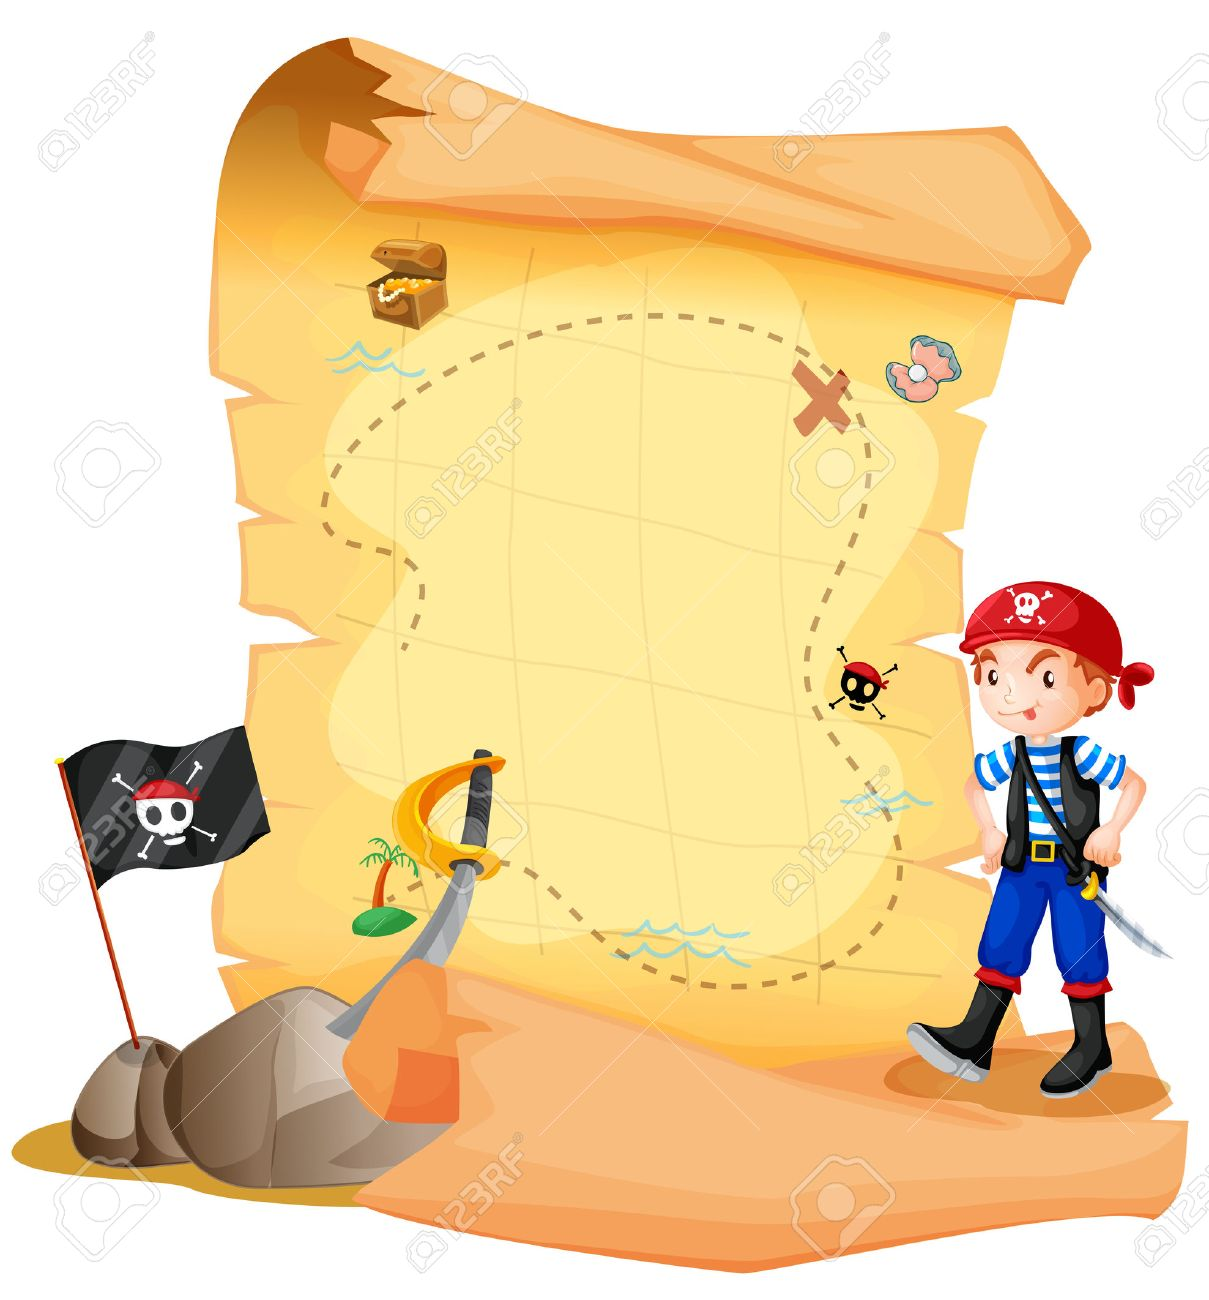 8 353 pirate treasure stock vector illustration and royalty free